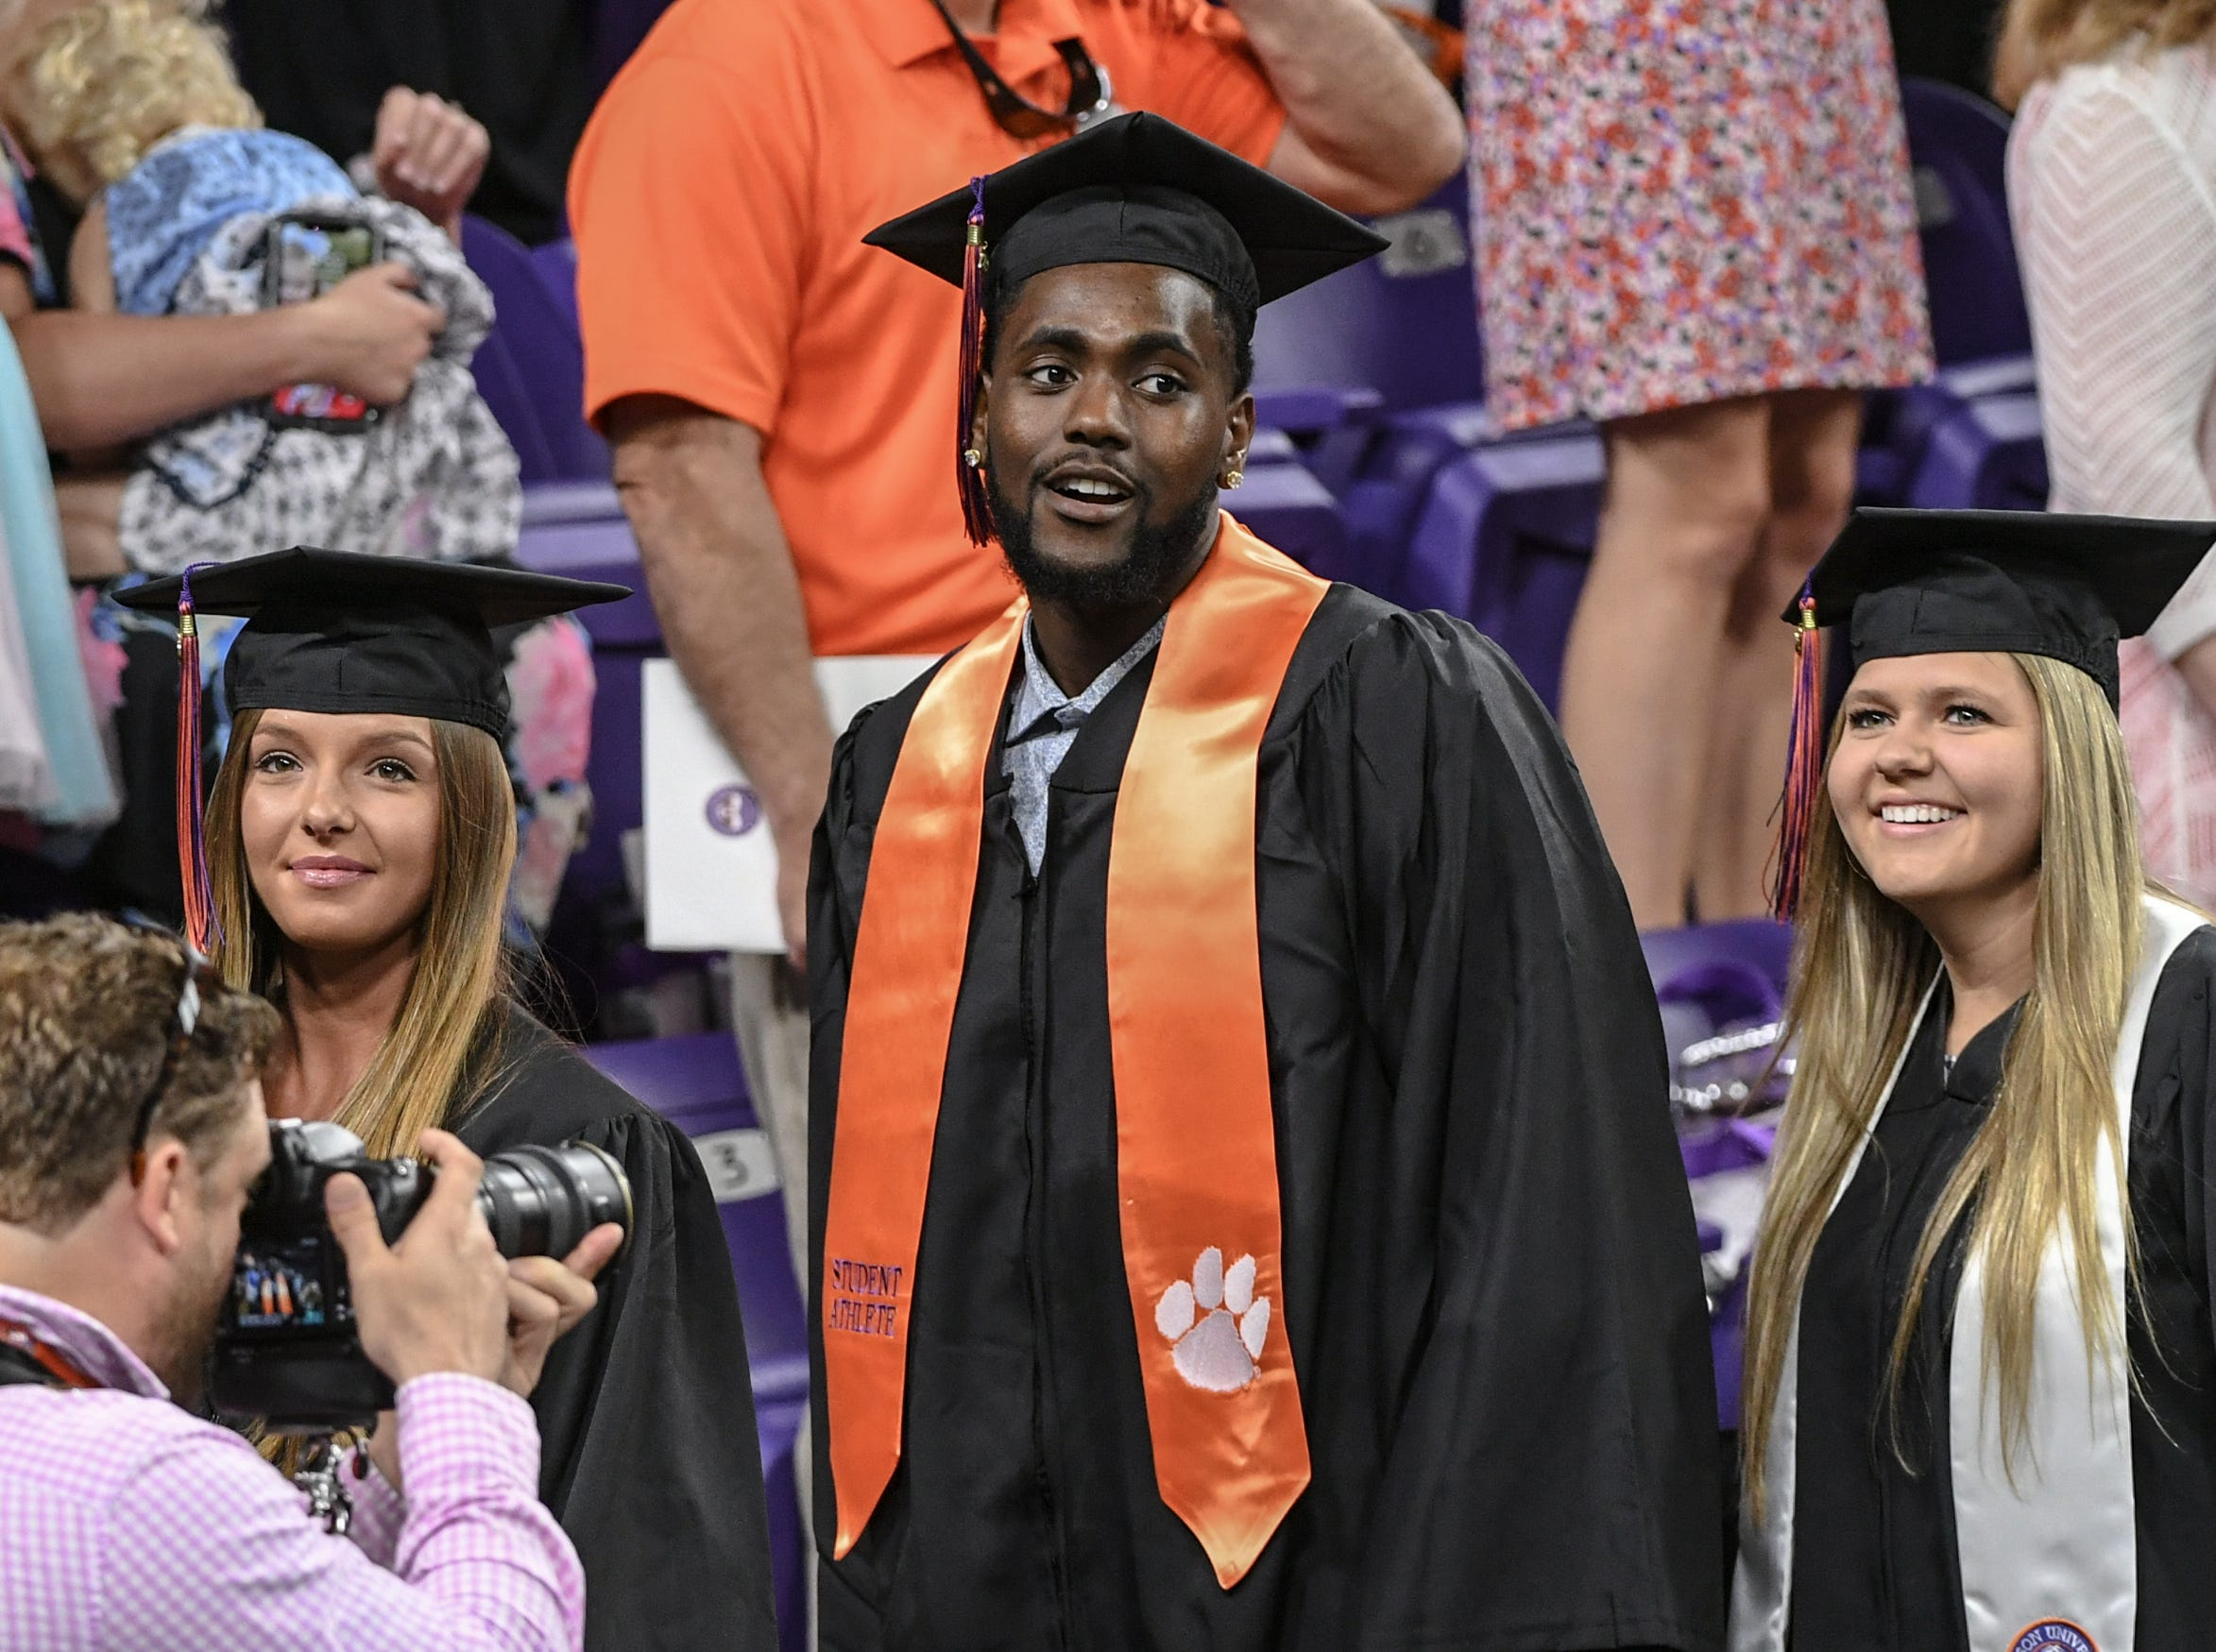 Alexandria Temple, left, and Paige Timberlake, right, stand on each side of a taller graduate, former men's basketball player Elijah Thomas of Dallas, Texas during Clemson University commencement ceremonies in Littlejohn Coliseum in Clemson Friday, May 10, 2019. Thomas and his classmates all earned a bachelor of science in Parks, Recreation, and Tourism Management.